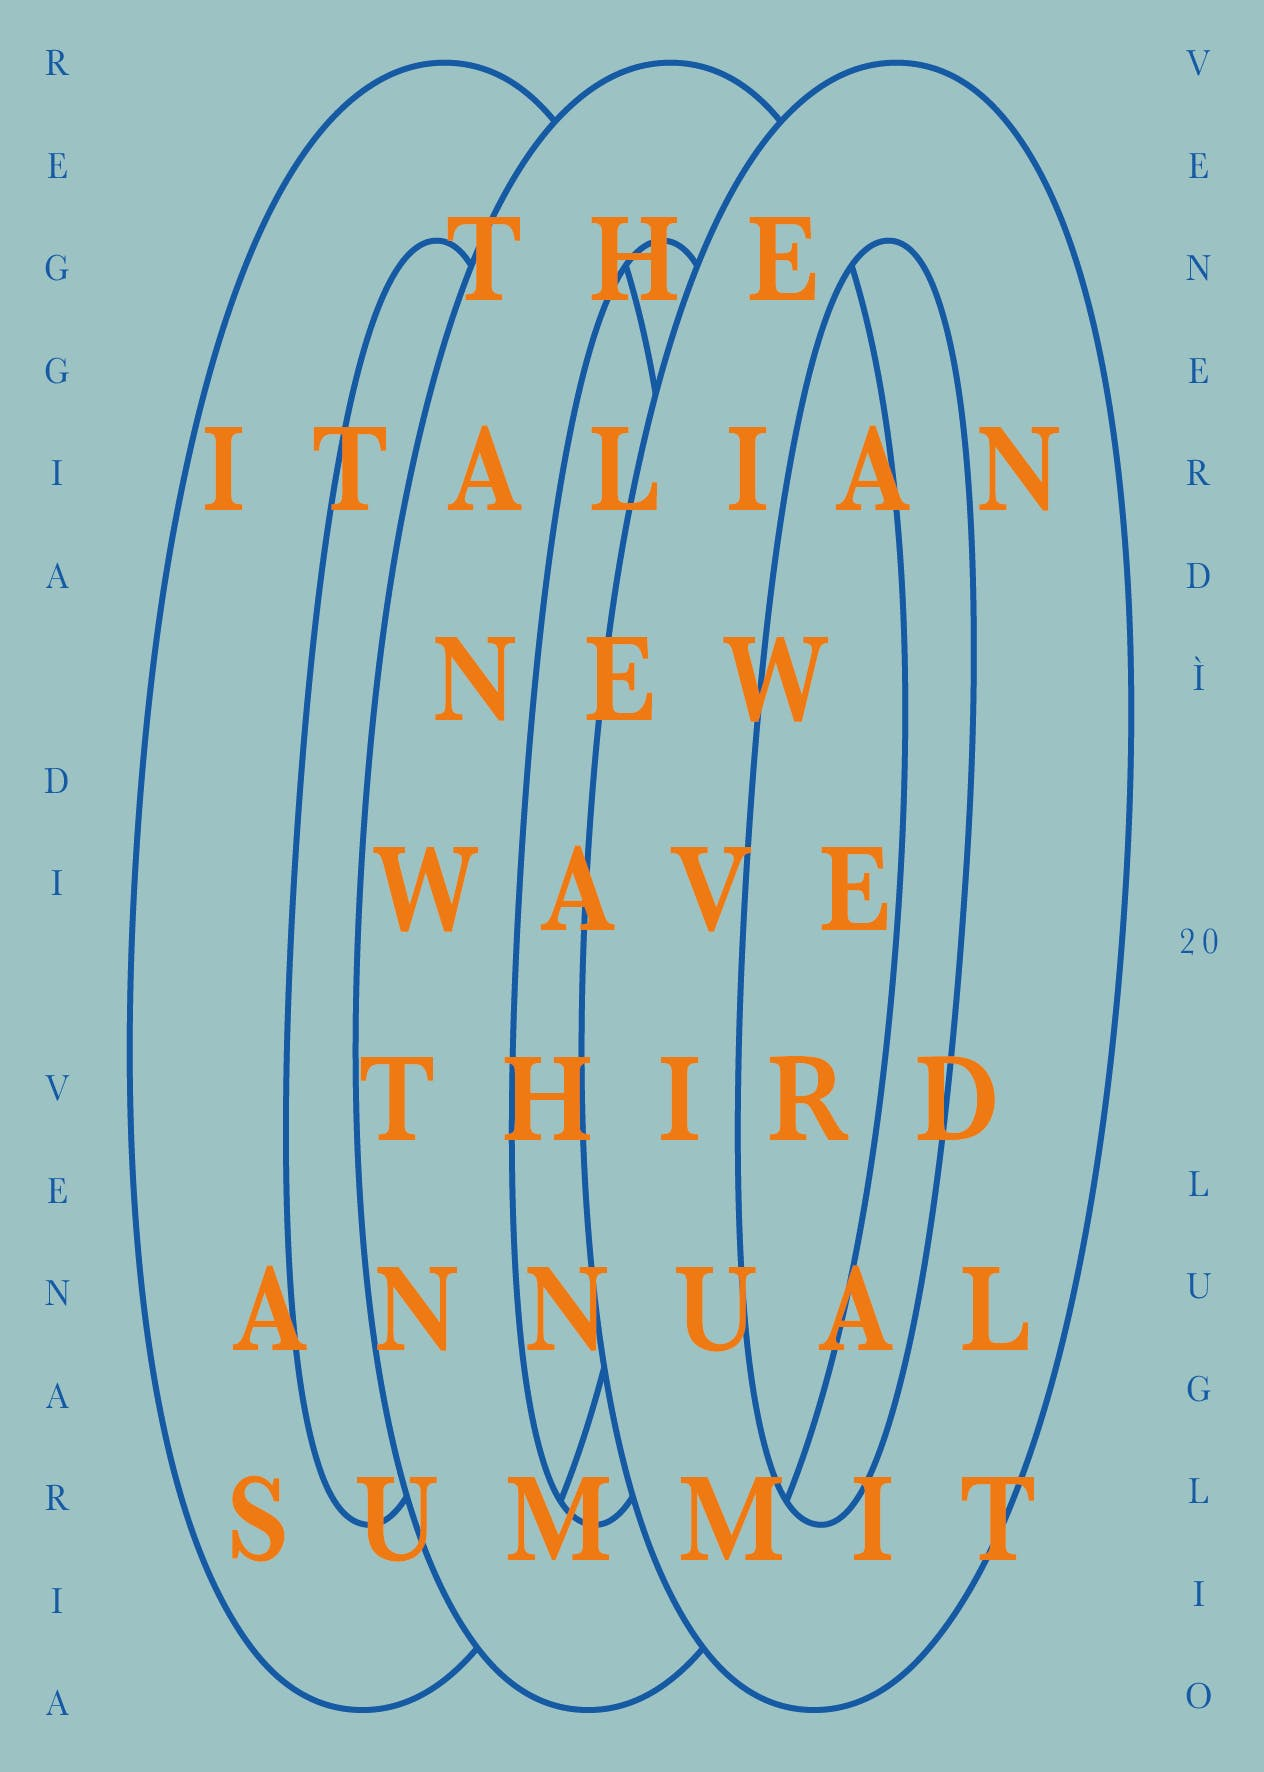 The Italian New Wave Third Annual Summit | Sh